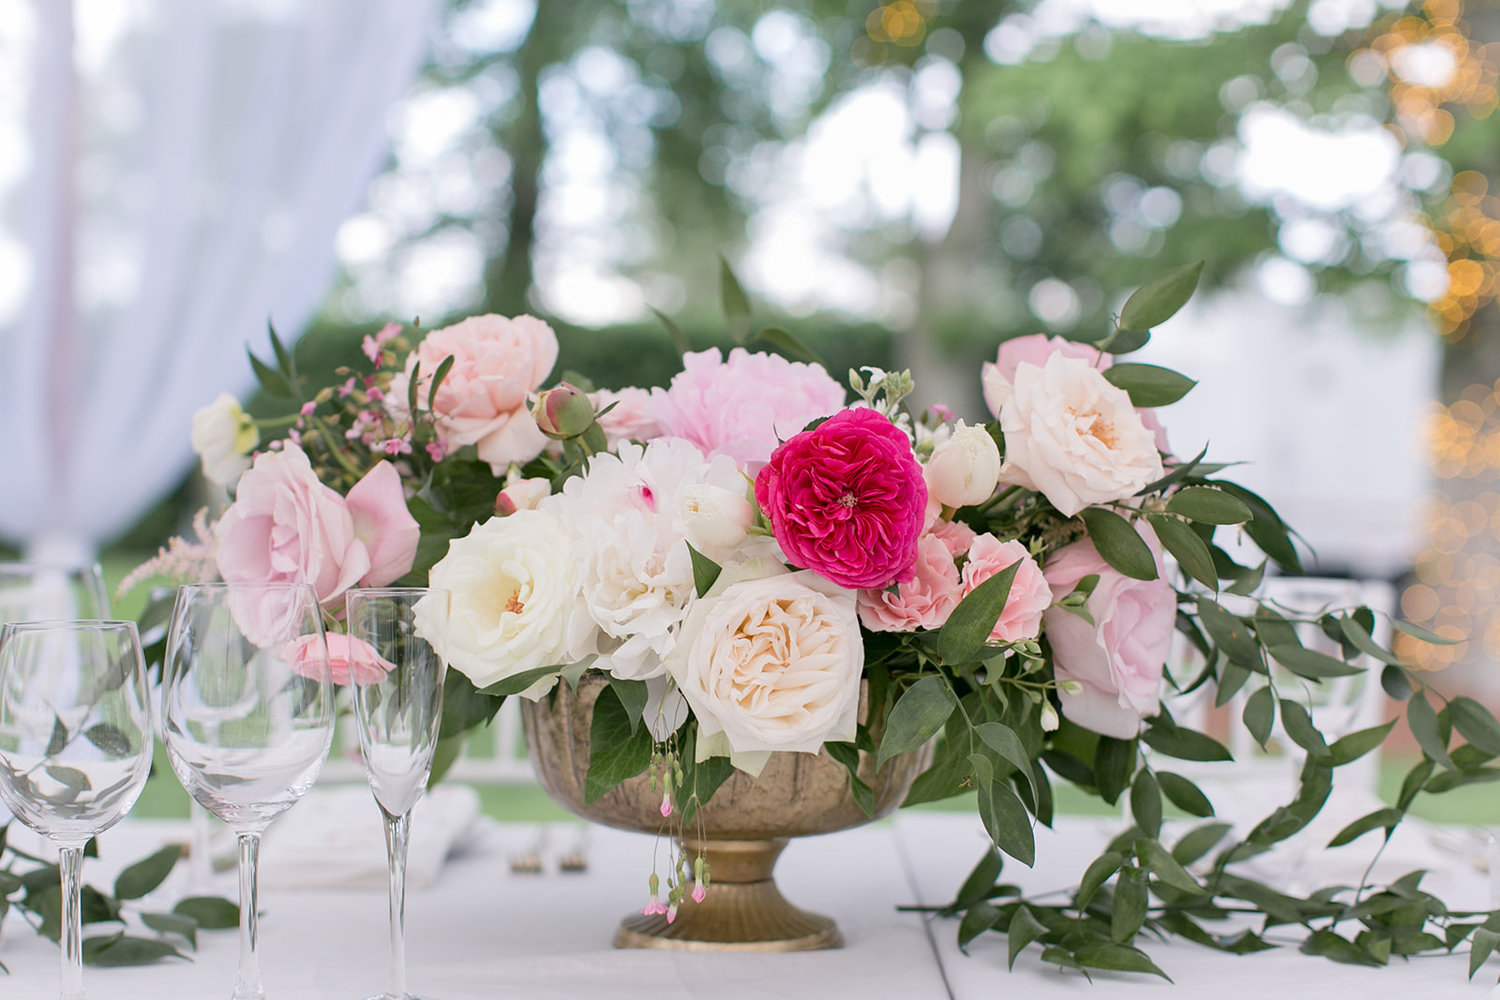 Greenwich Connecticut wedding centerpiece pink white garden roses peonies.jpg